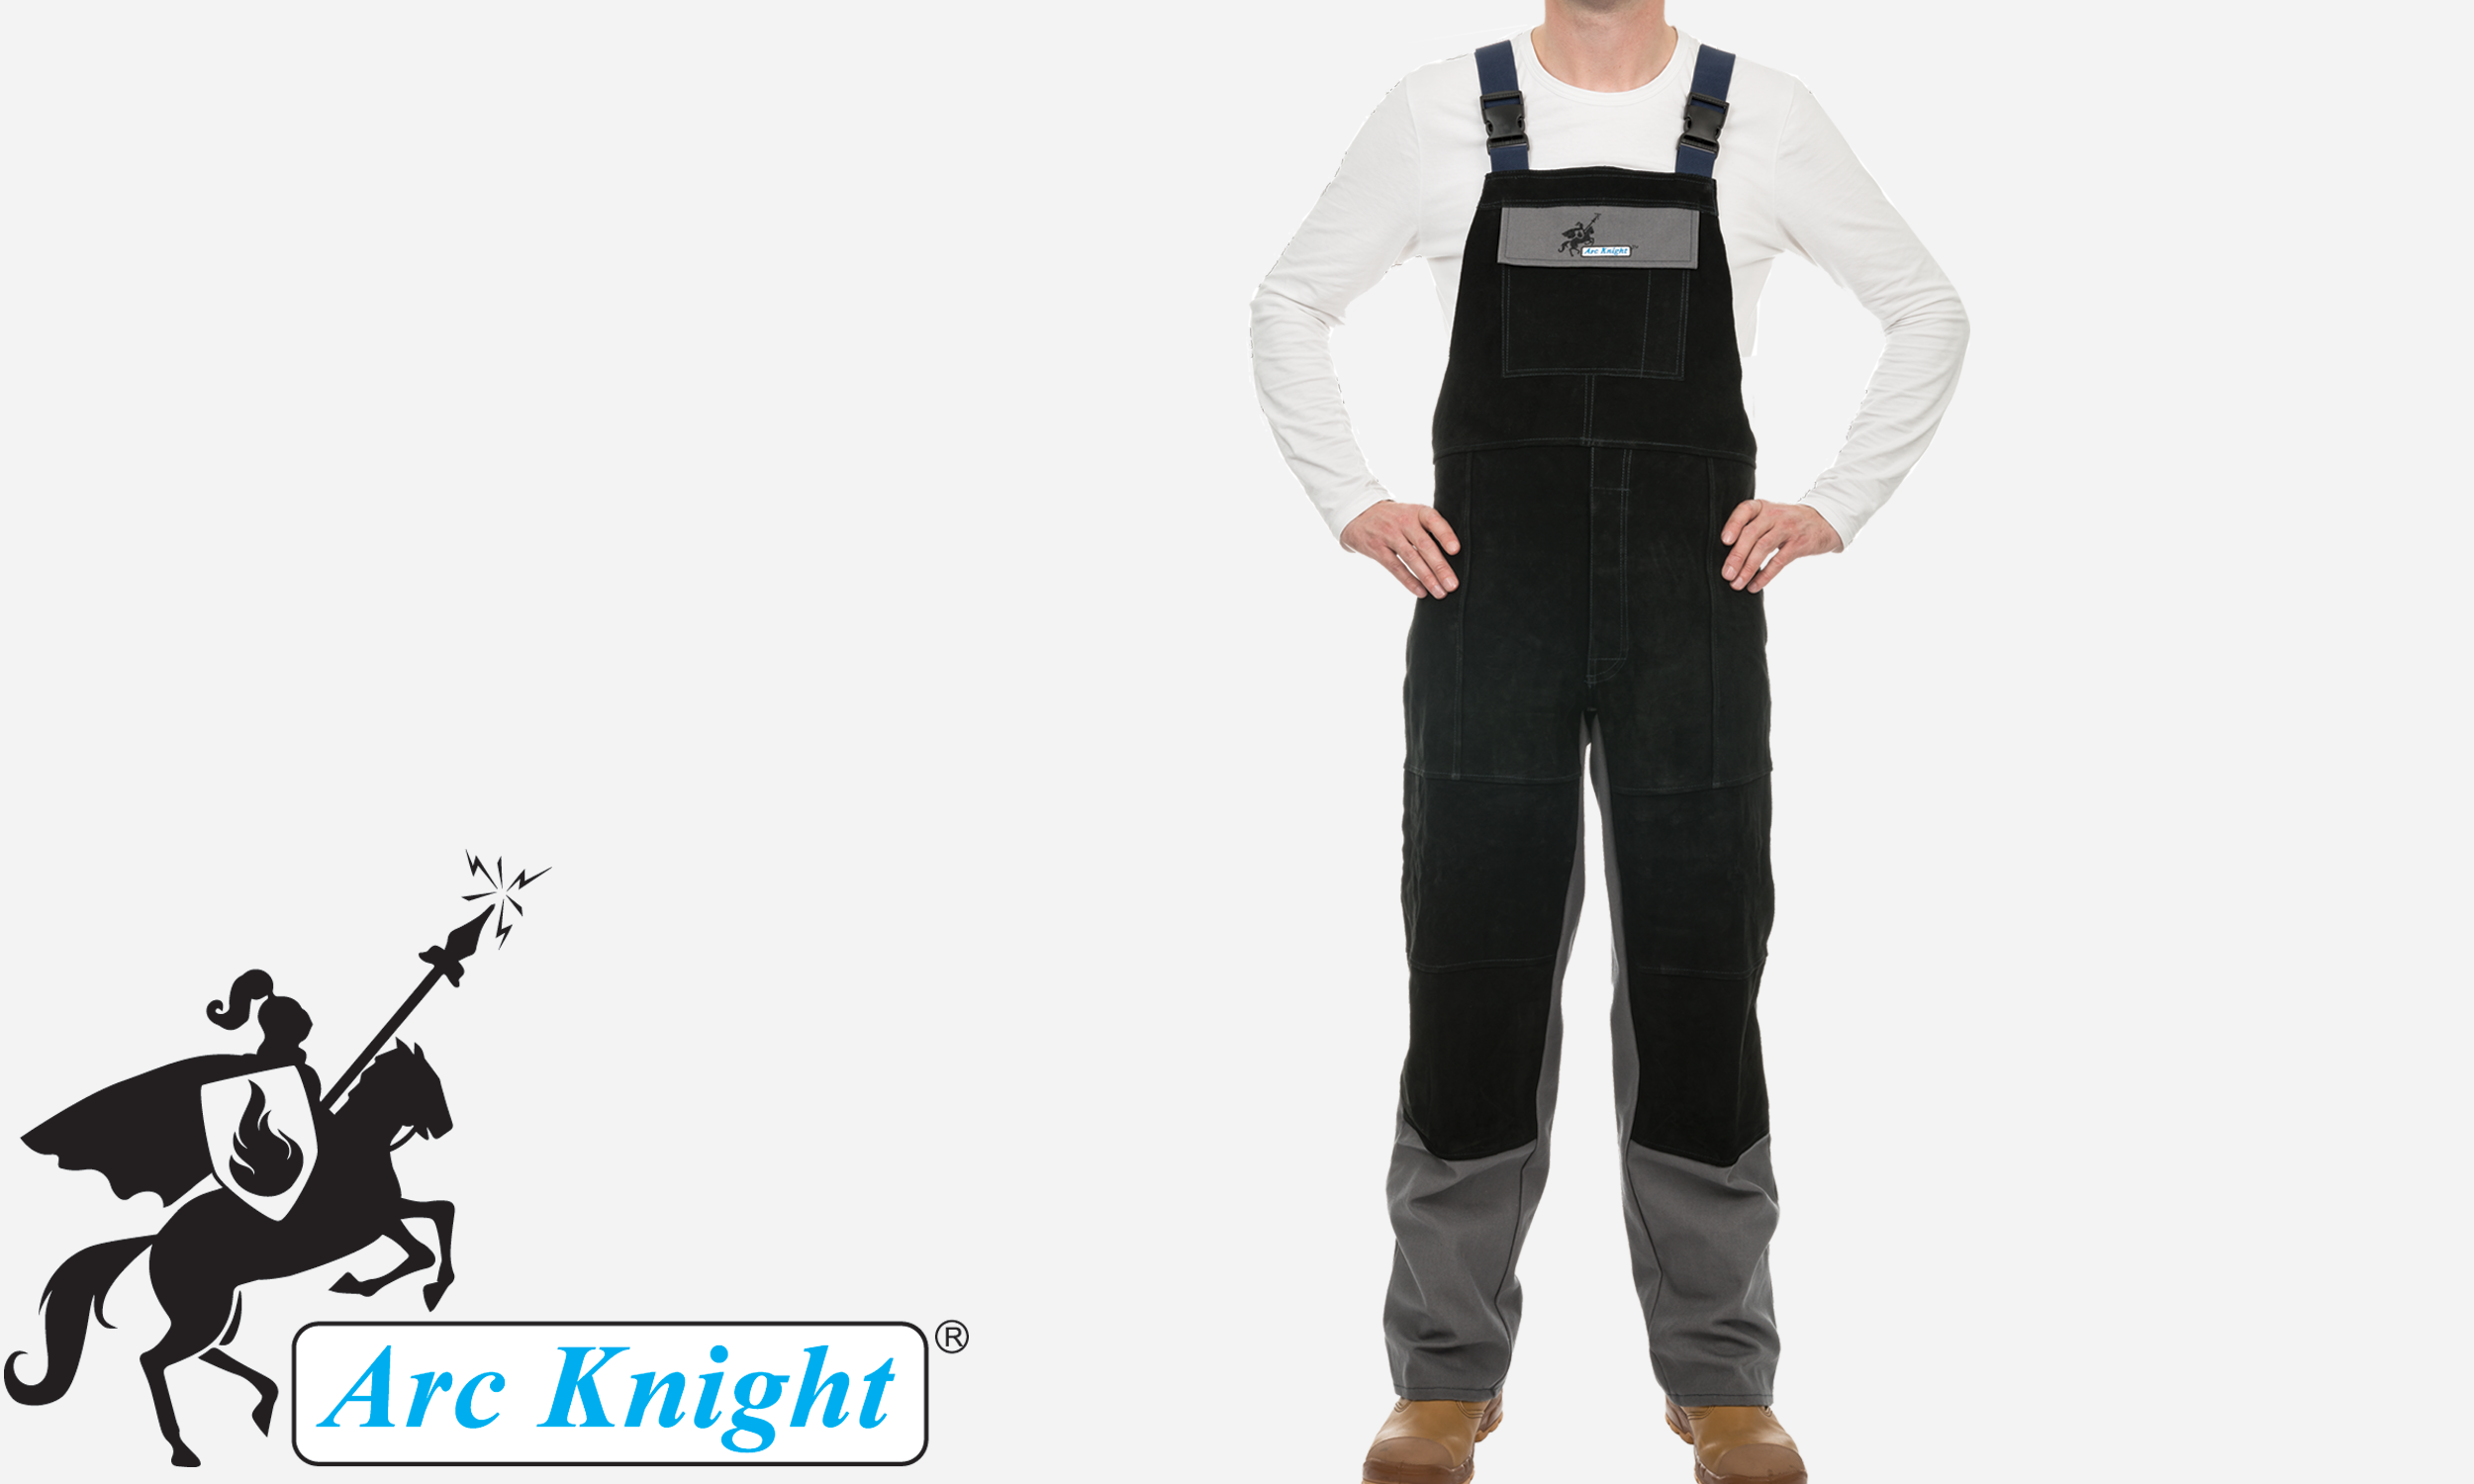 38-4340 Arc Knight Overall Front View.png